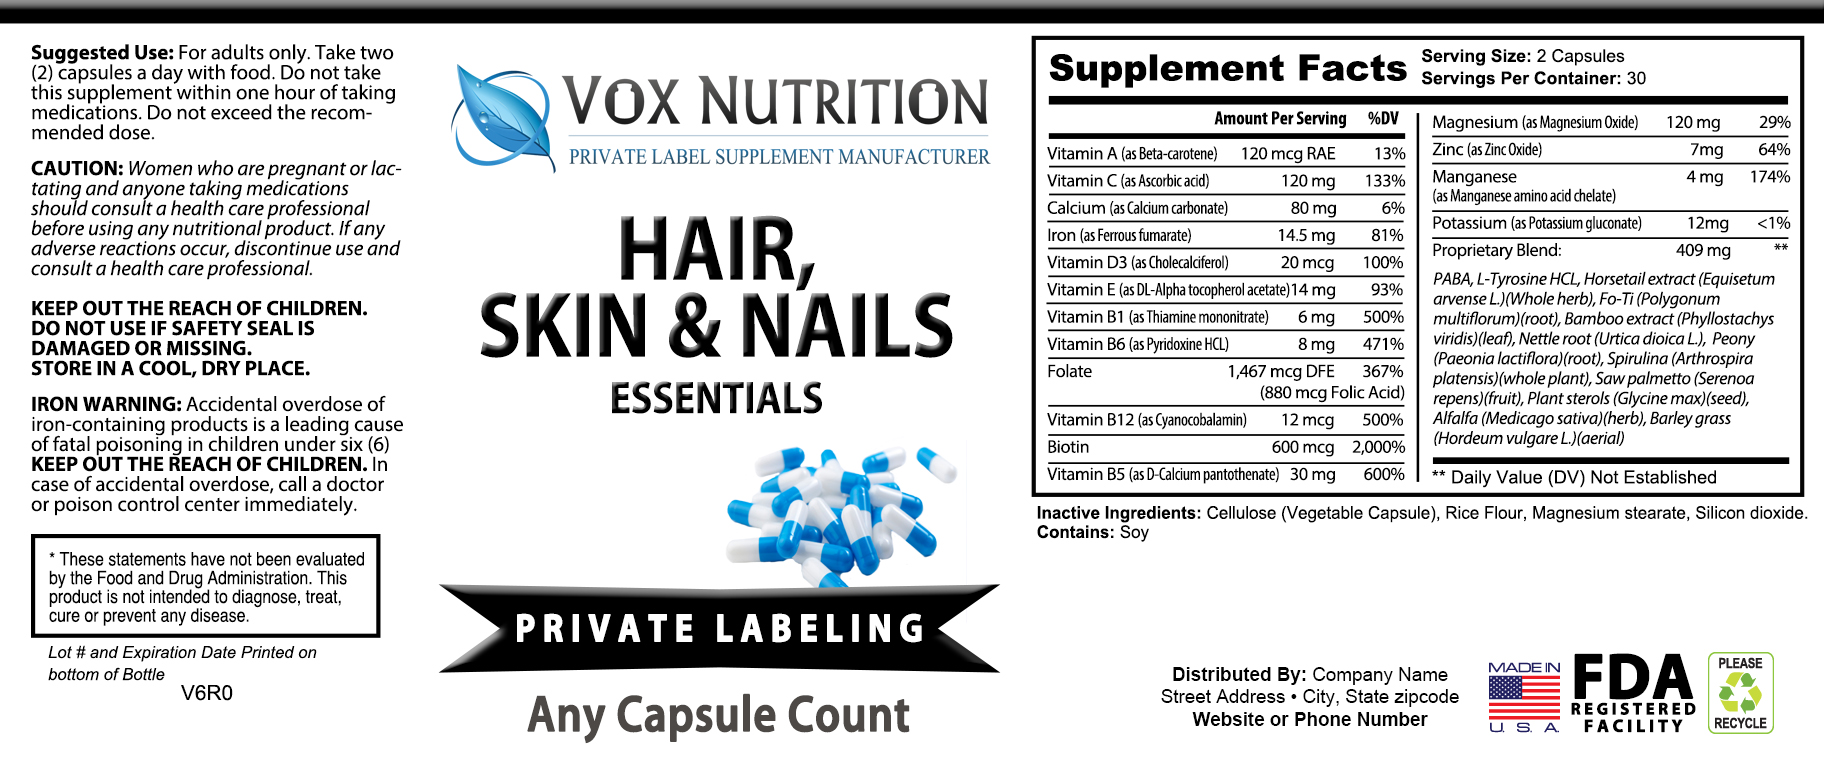 Private label hair, skin and nail vitamin supplement label